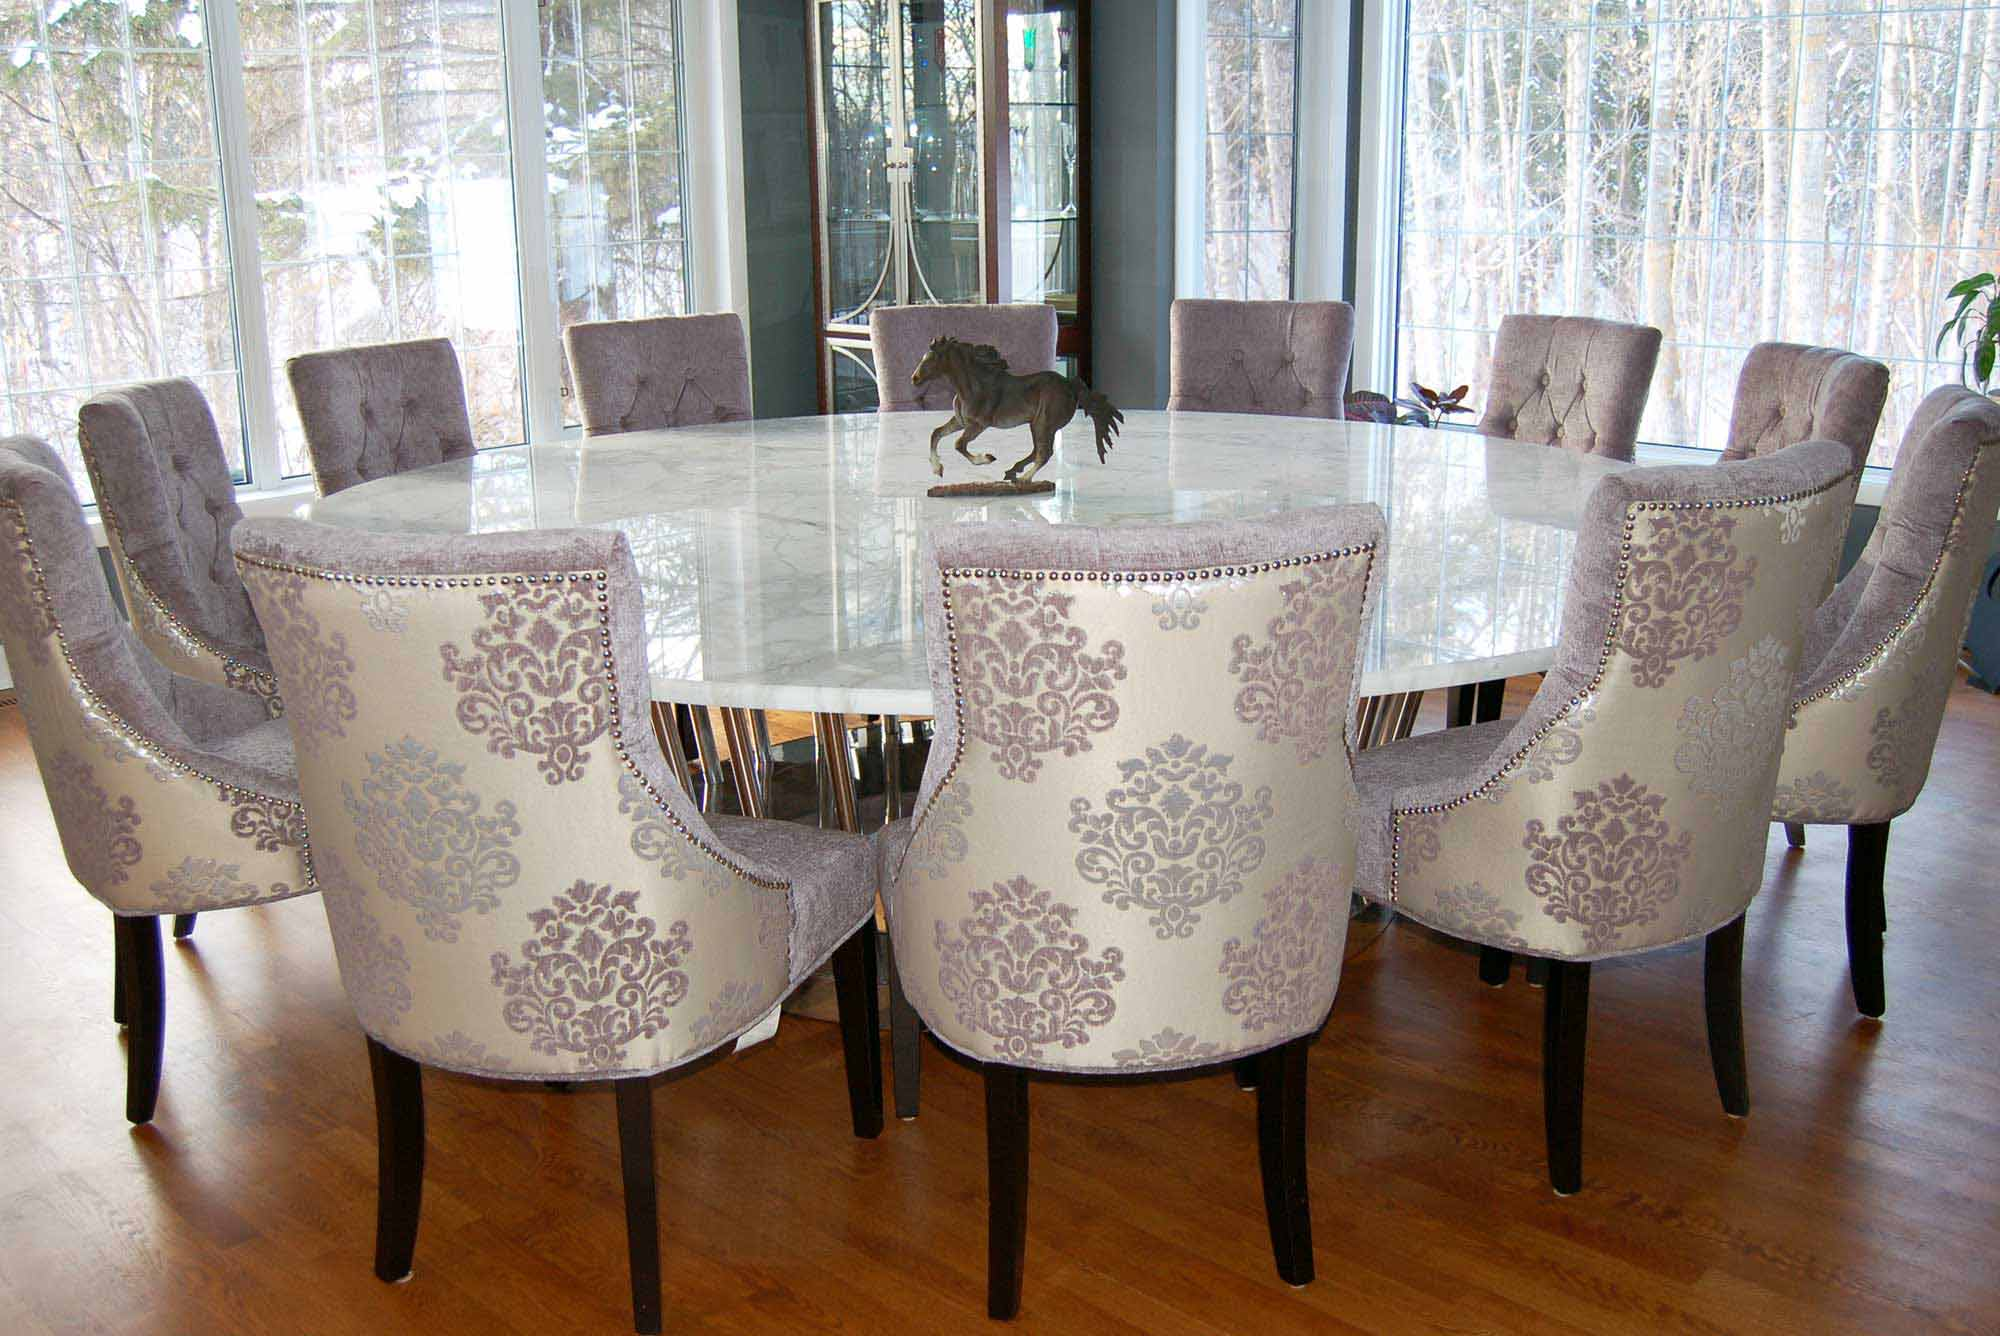 Big Rounded Dining Table With Marble Top Expensive And Elegant Chairs Wood Finishing Floor